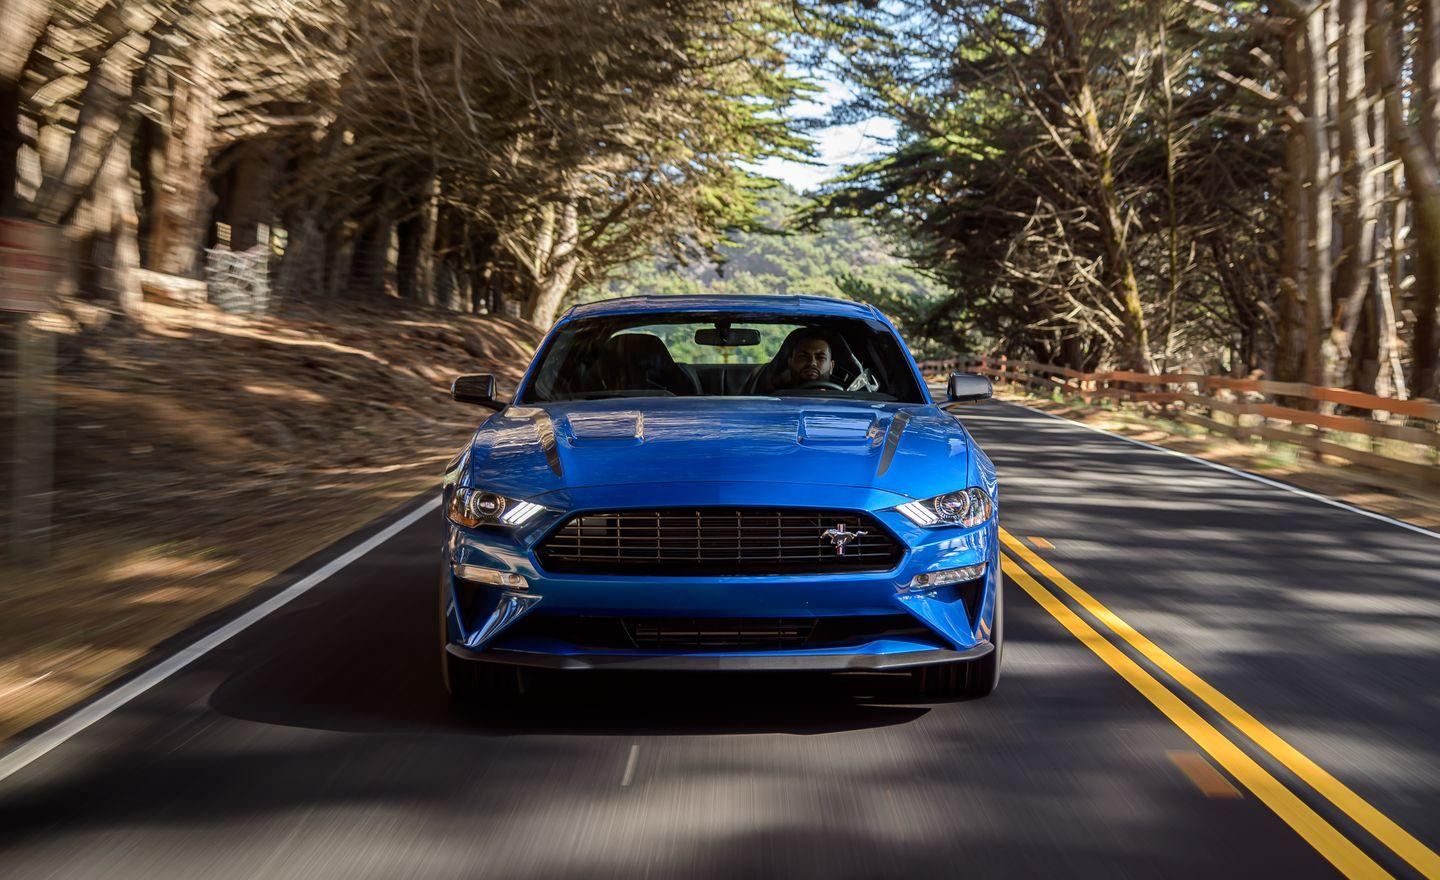 <p>For the 2020 model year, the Ford Mustang EcoBoost coupe and convertible are available with the High Performance package, which adds exclusive styling, a more exciting engine, and better handling characteristics.</p>